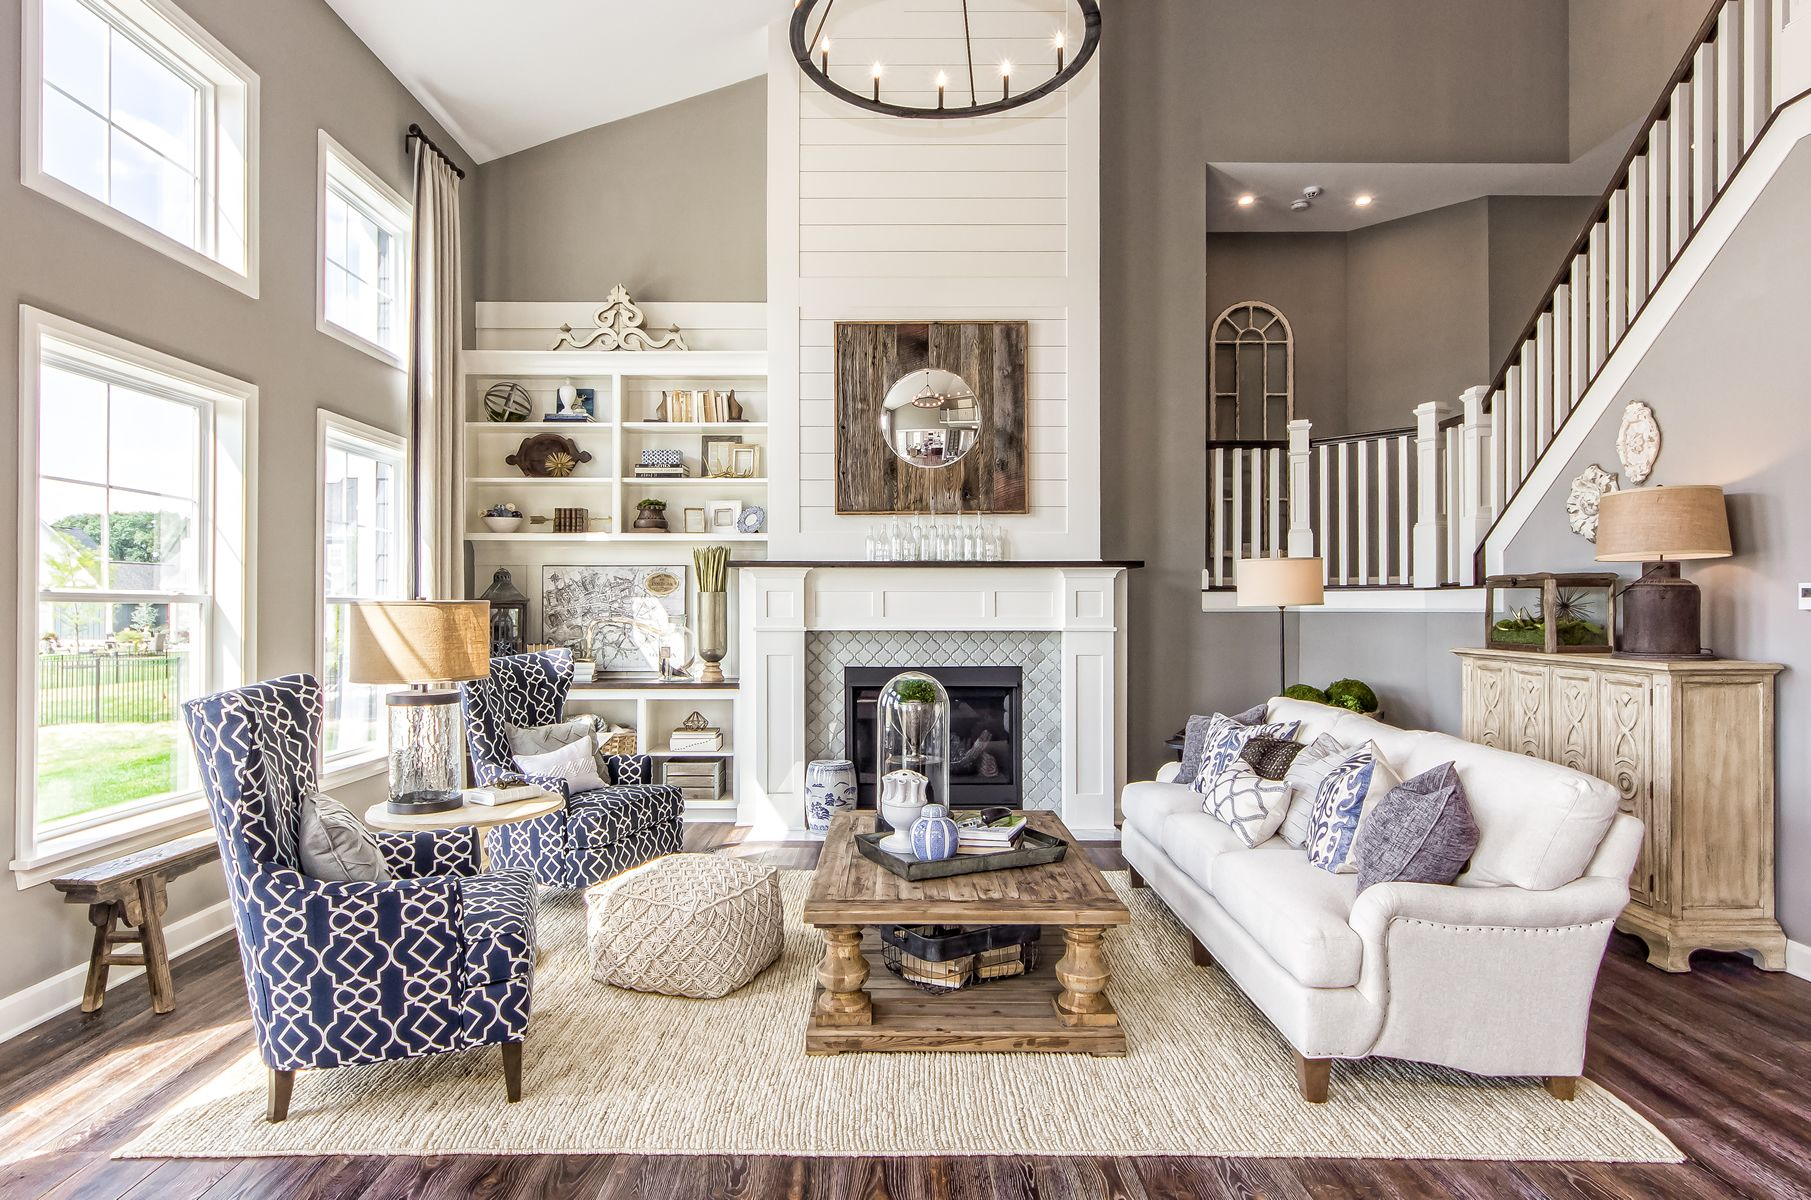 Living Room Great Room Fireplace Two Story Great Room Wall